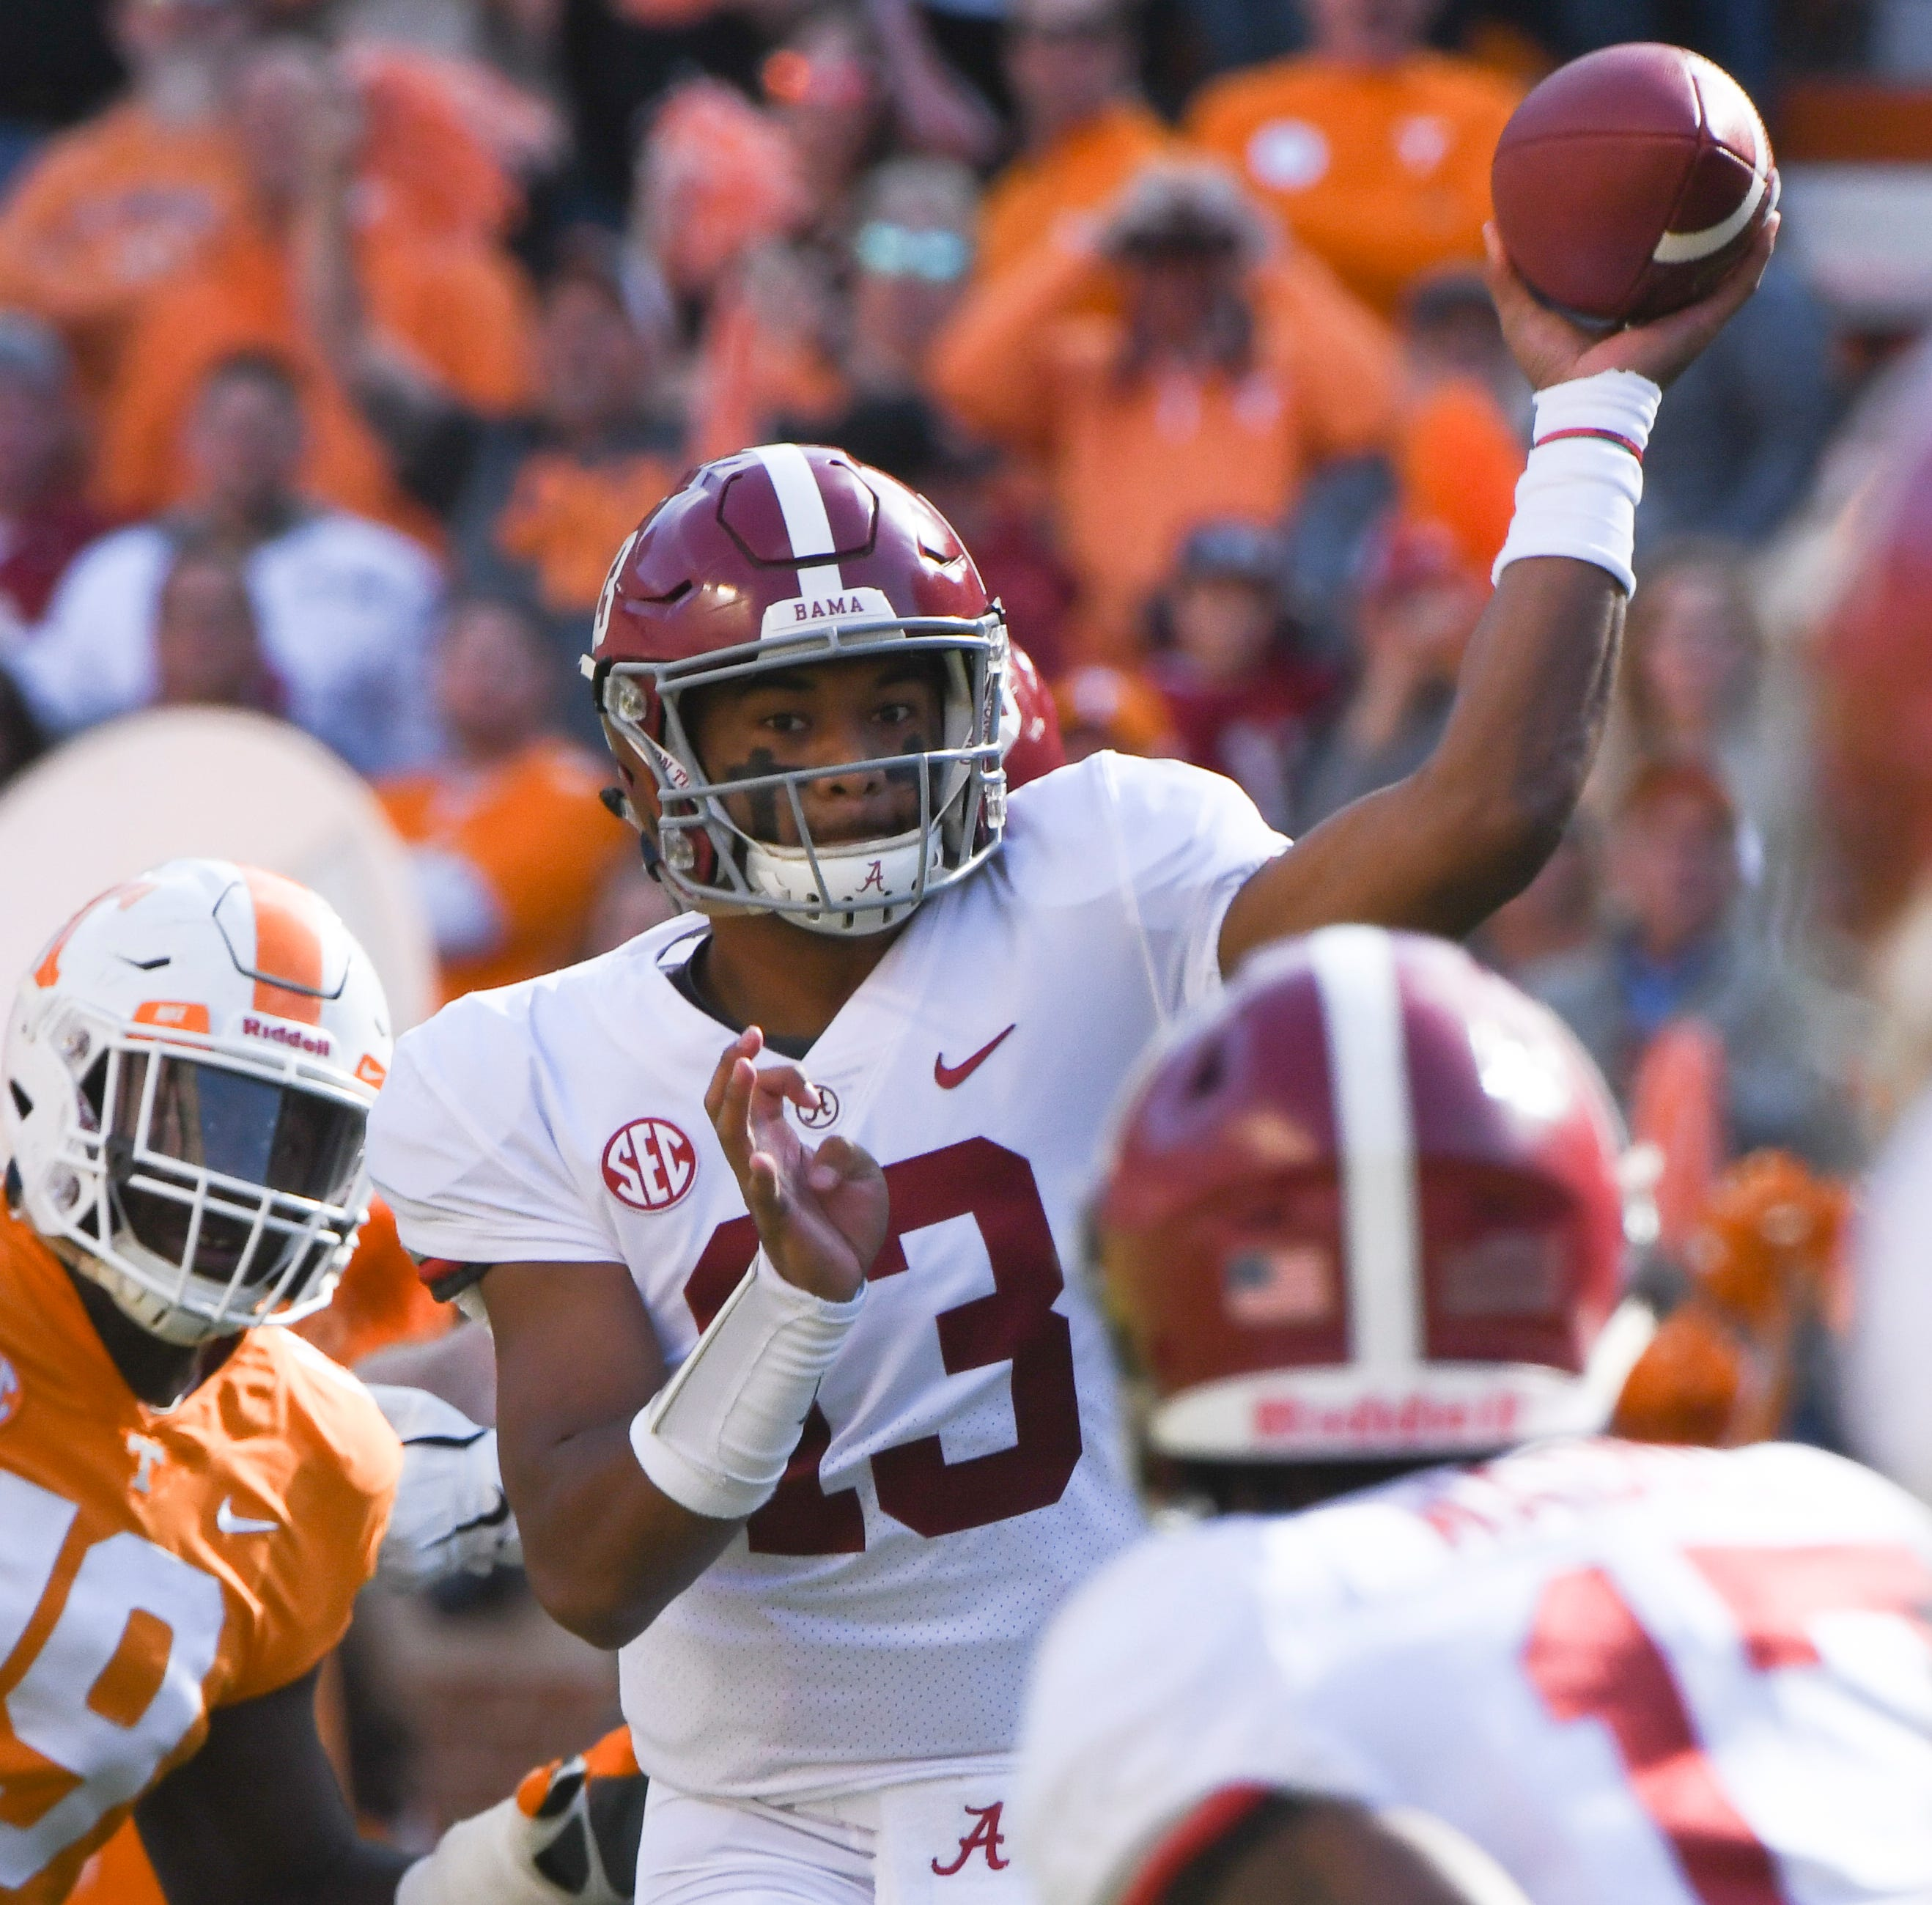 UT Vols: Alabama leads 44-14 in third quarter, Guarantano not returning to game